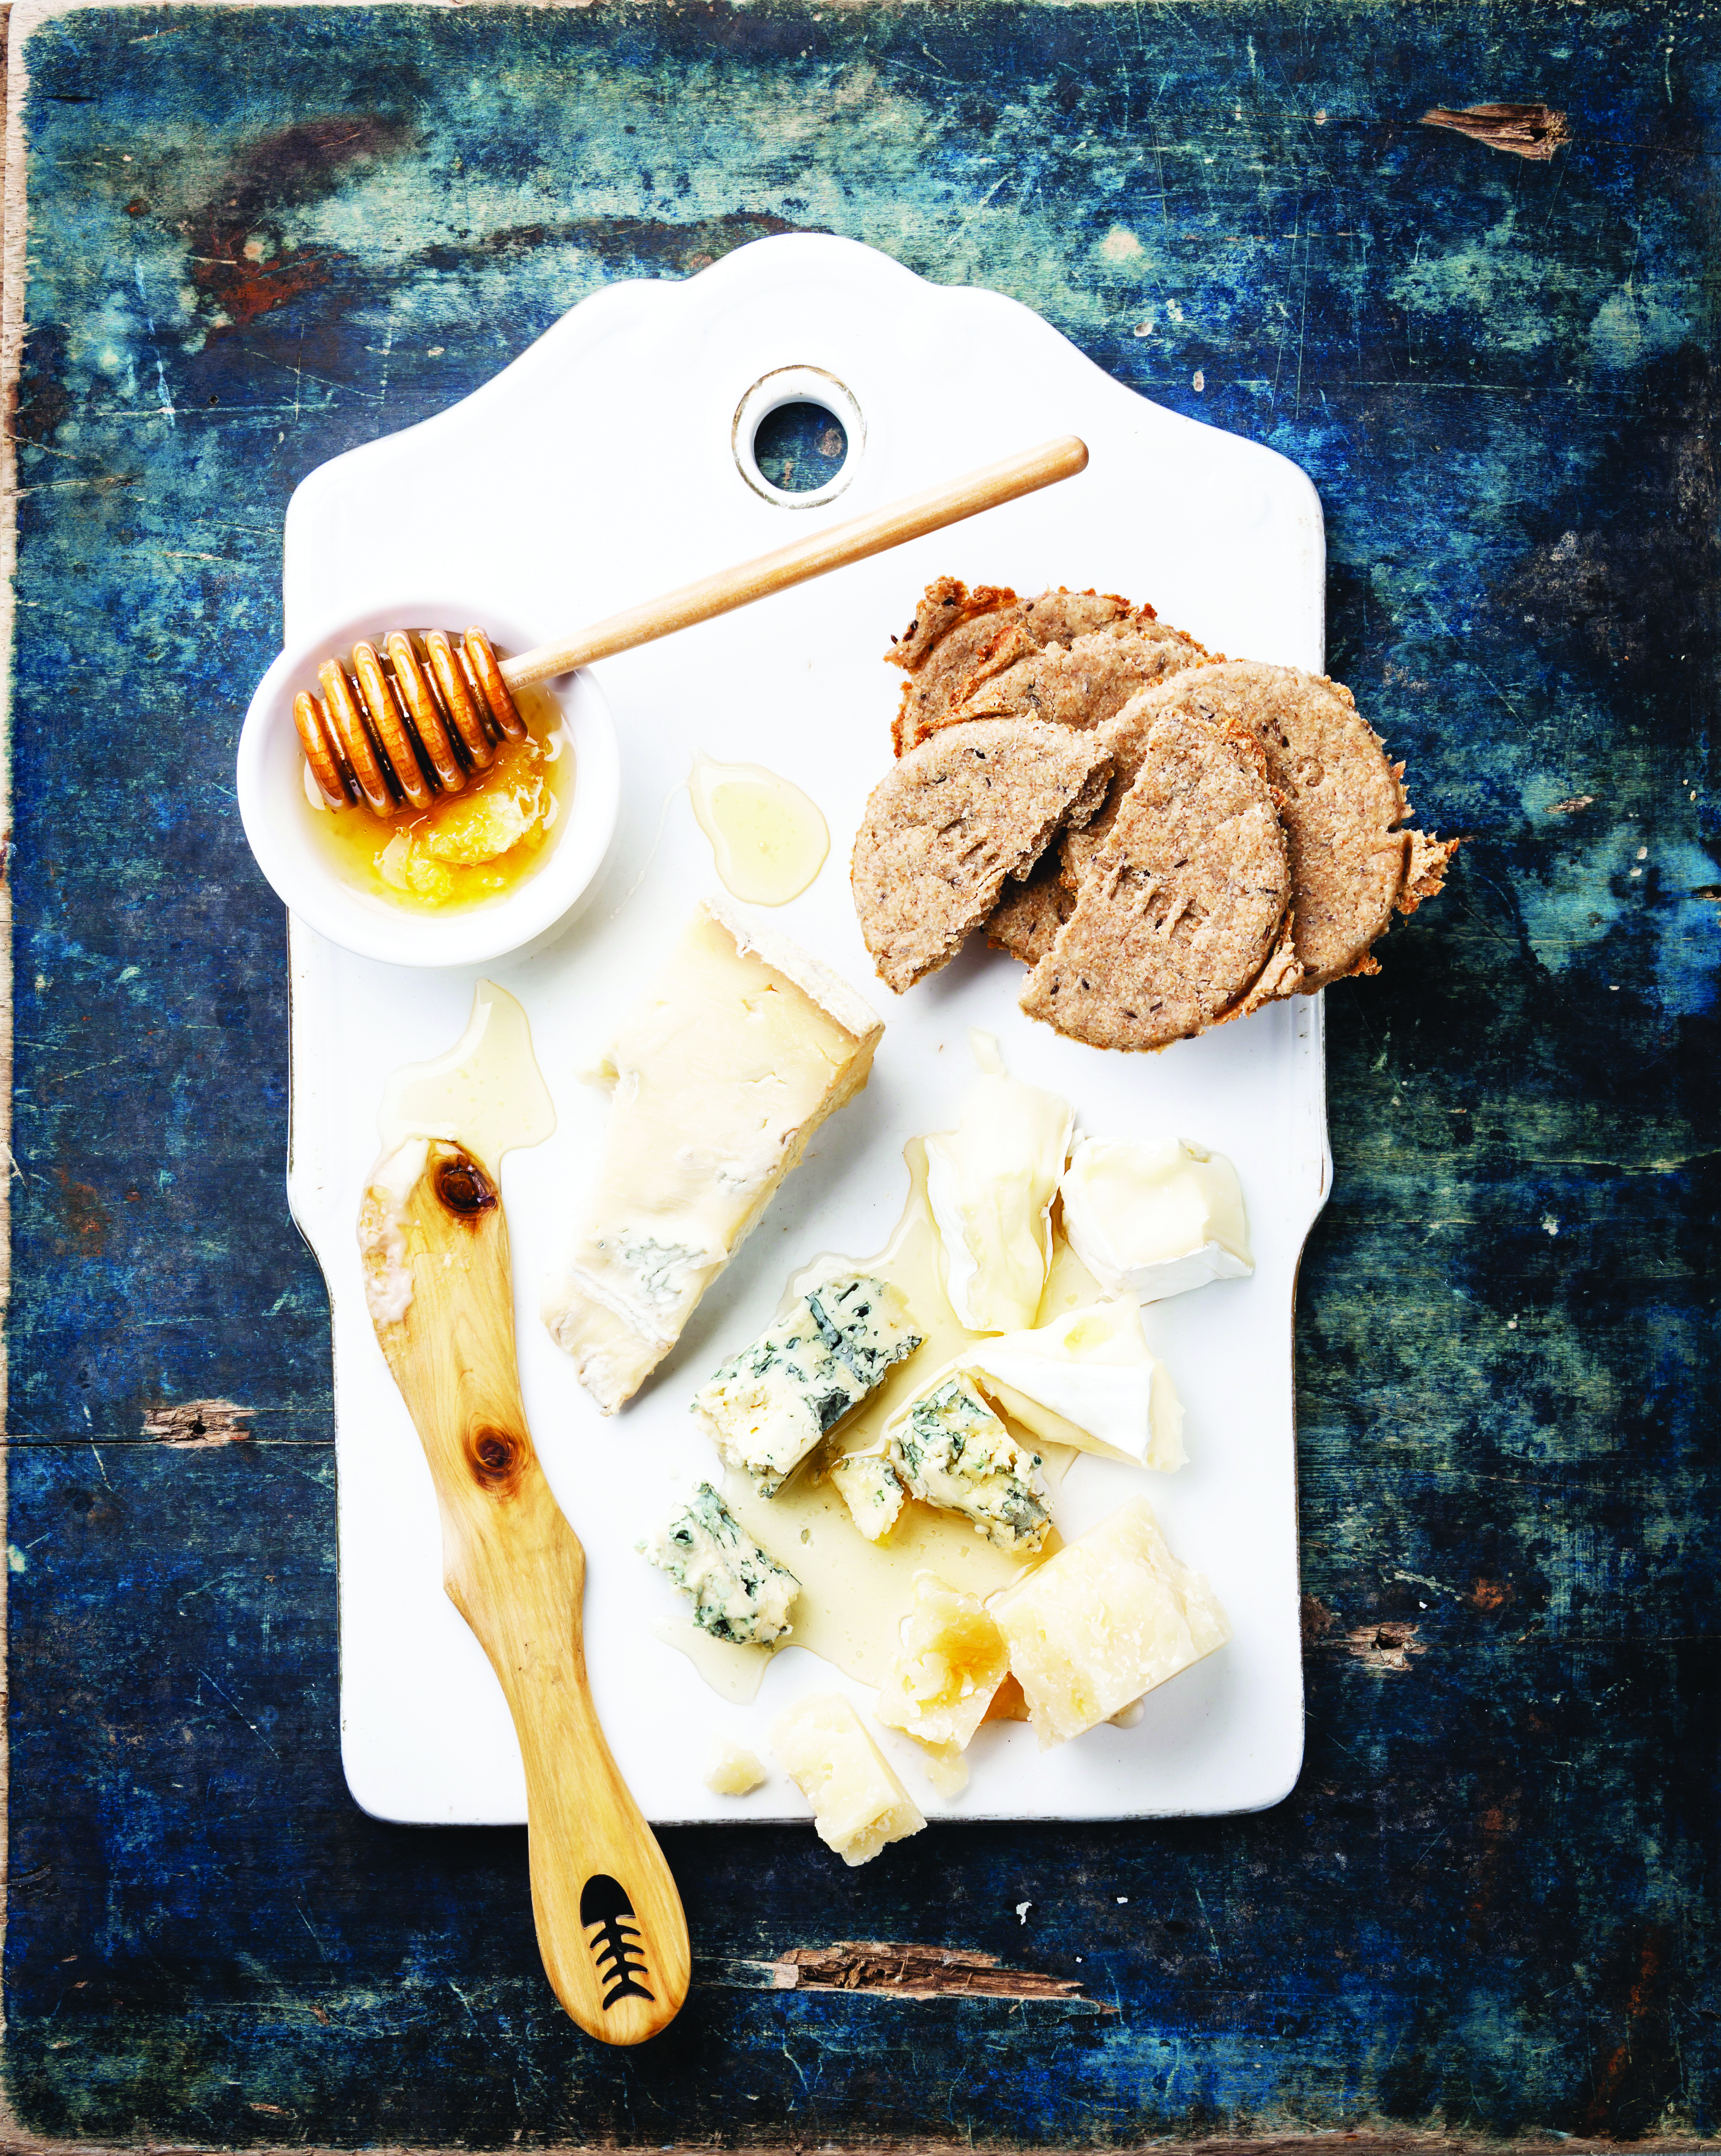 Cheese appetizer with honey and crackers